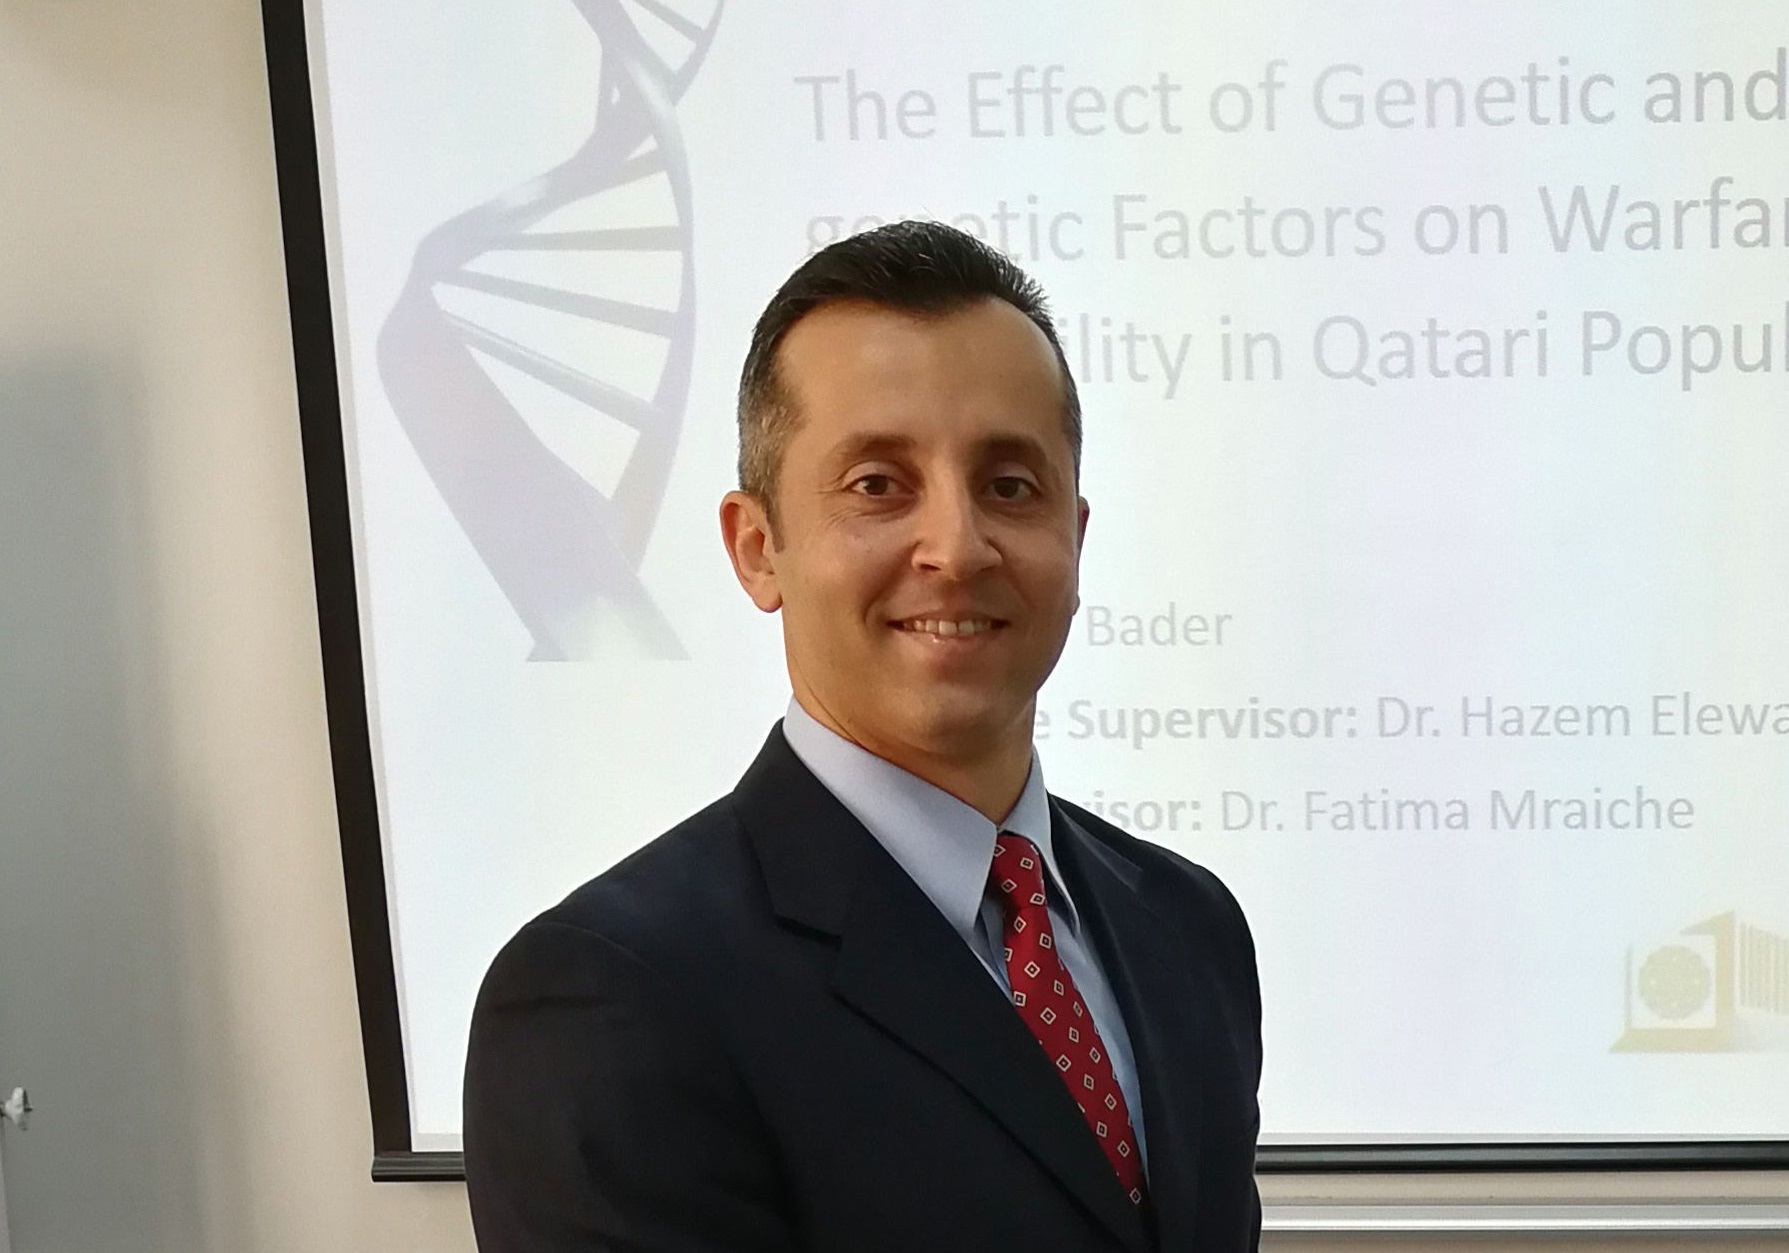 Pharmacogenetic Testing Practices in Qatar